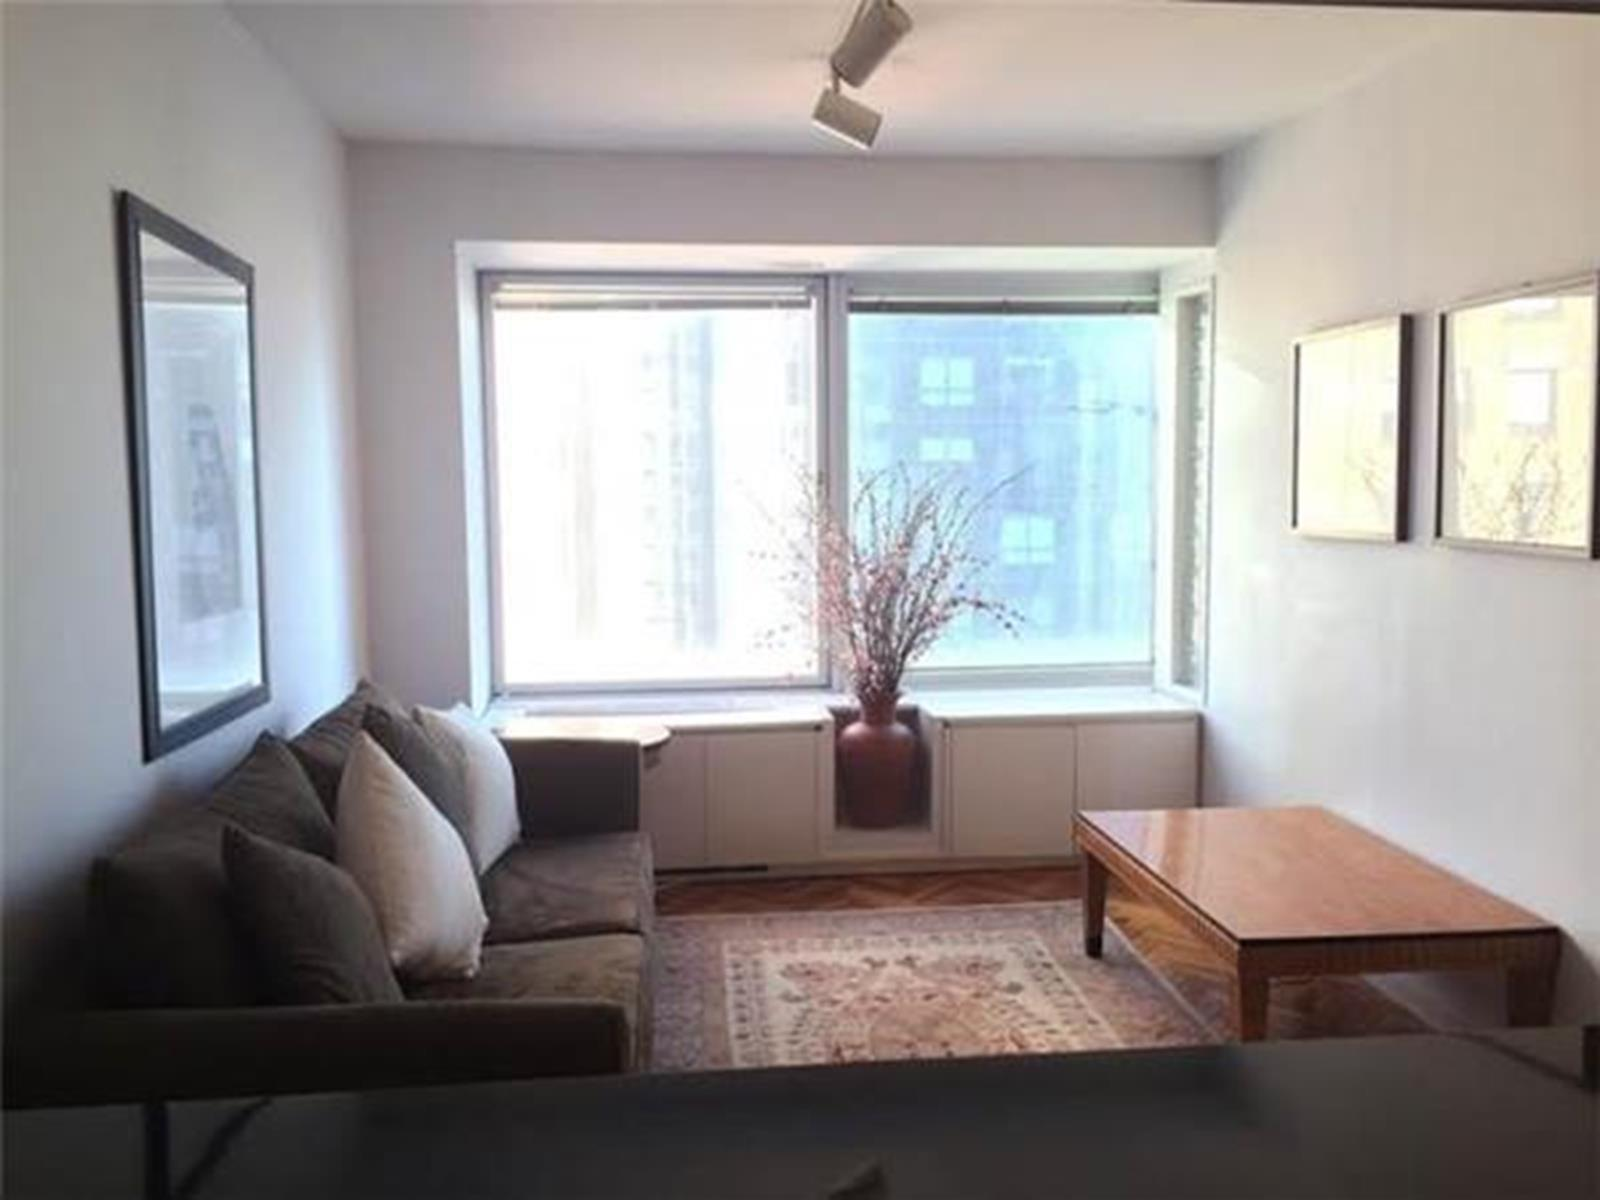 This cozy, FURNISHED junior one bedroom on 34th Floor with some views of City skyline facing North. Located in one of the most sought after luxurious midtown condominiums, CitySpire. This perfect junior one bedroom offers a gallery kitchen, bright living room, bedroom with lots of closets, marble bathroom.